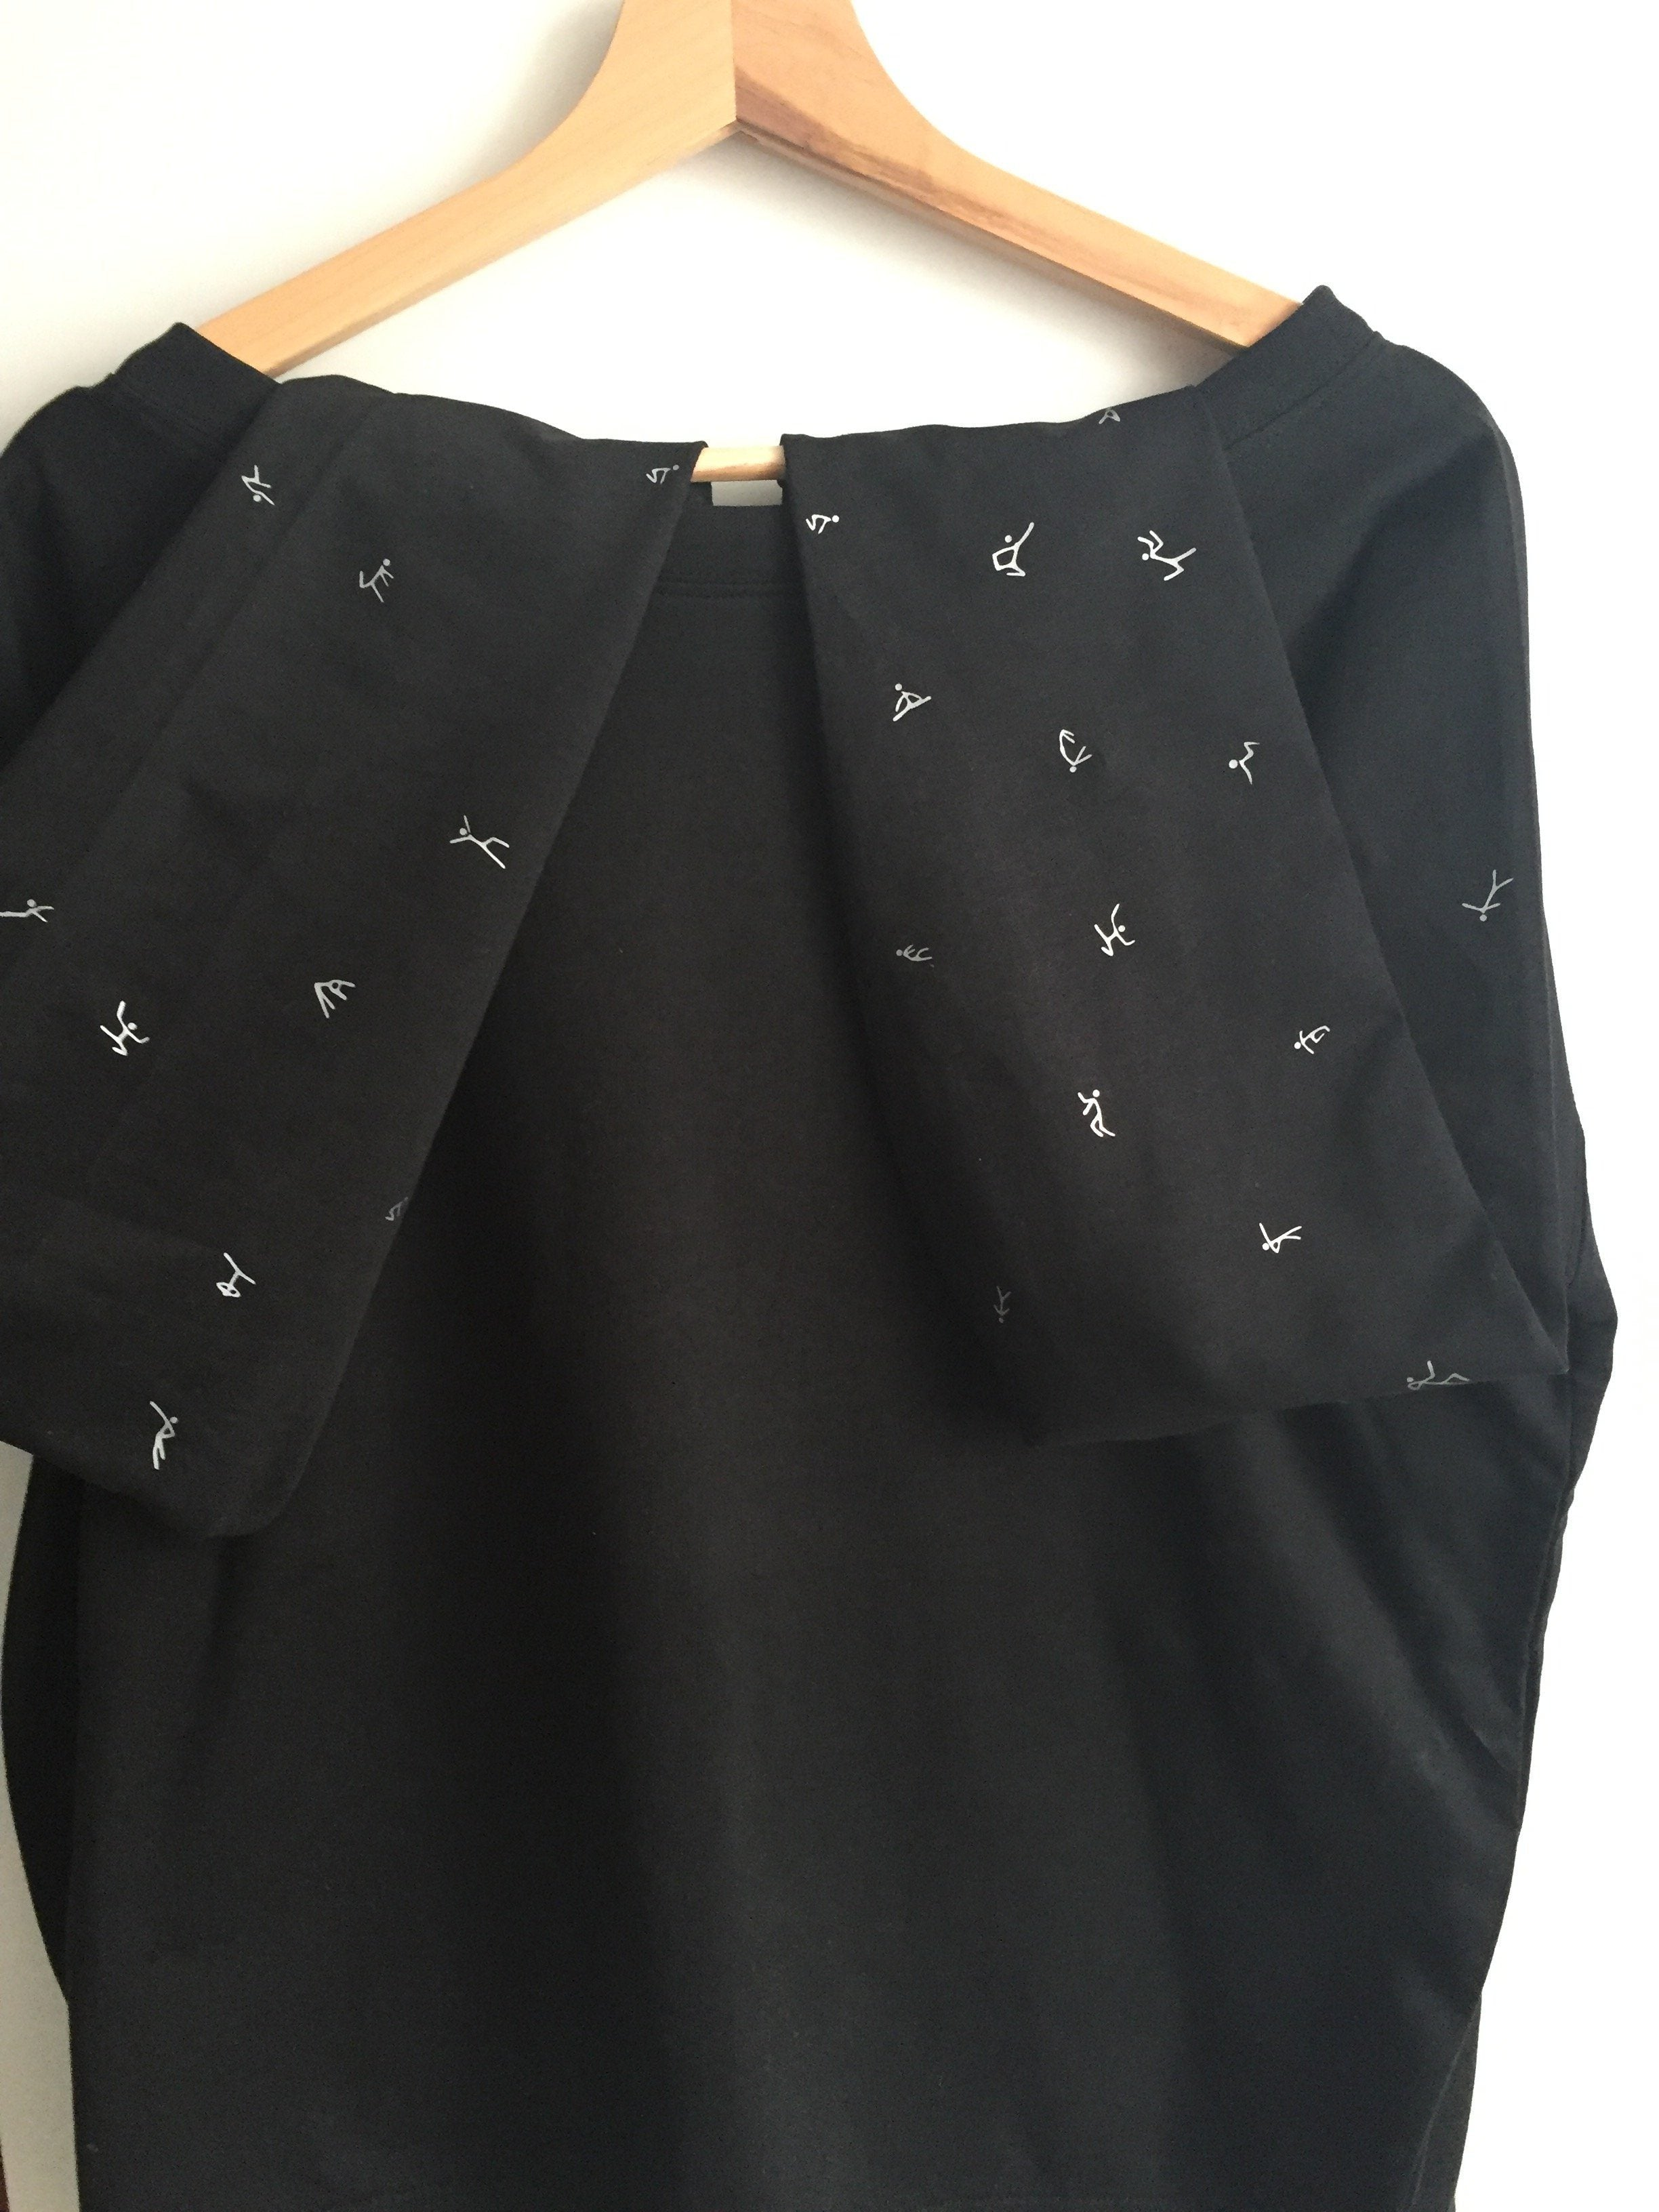 Women Top - Black Jumper, Silver Stick Figures